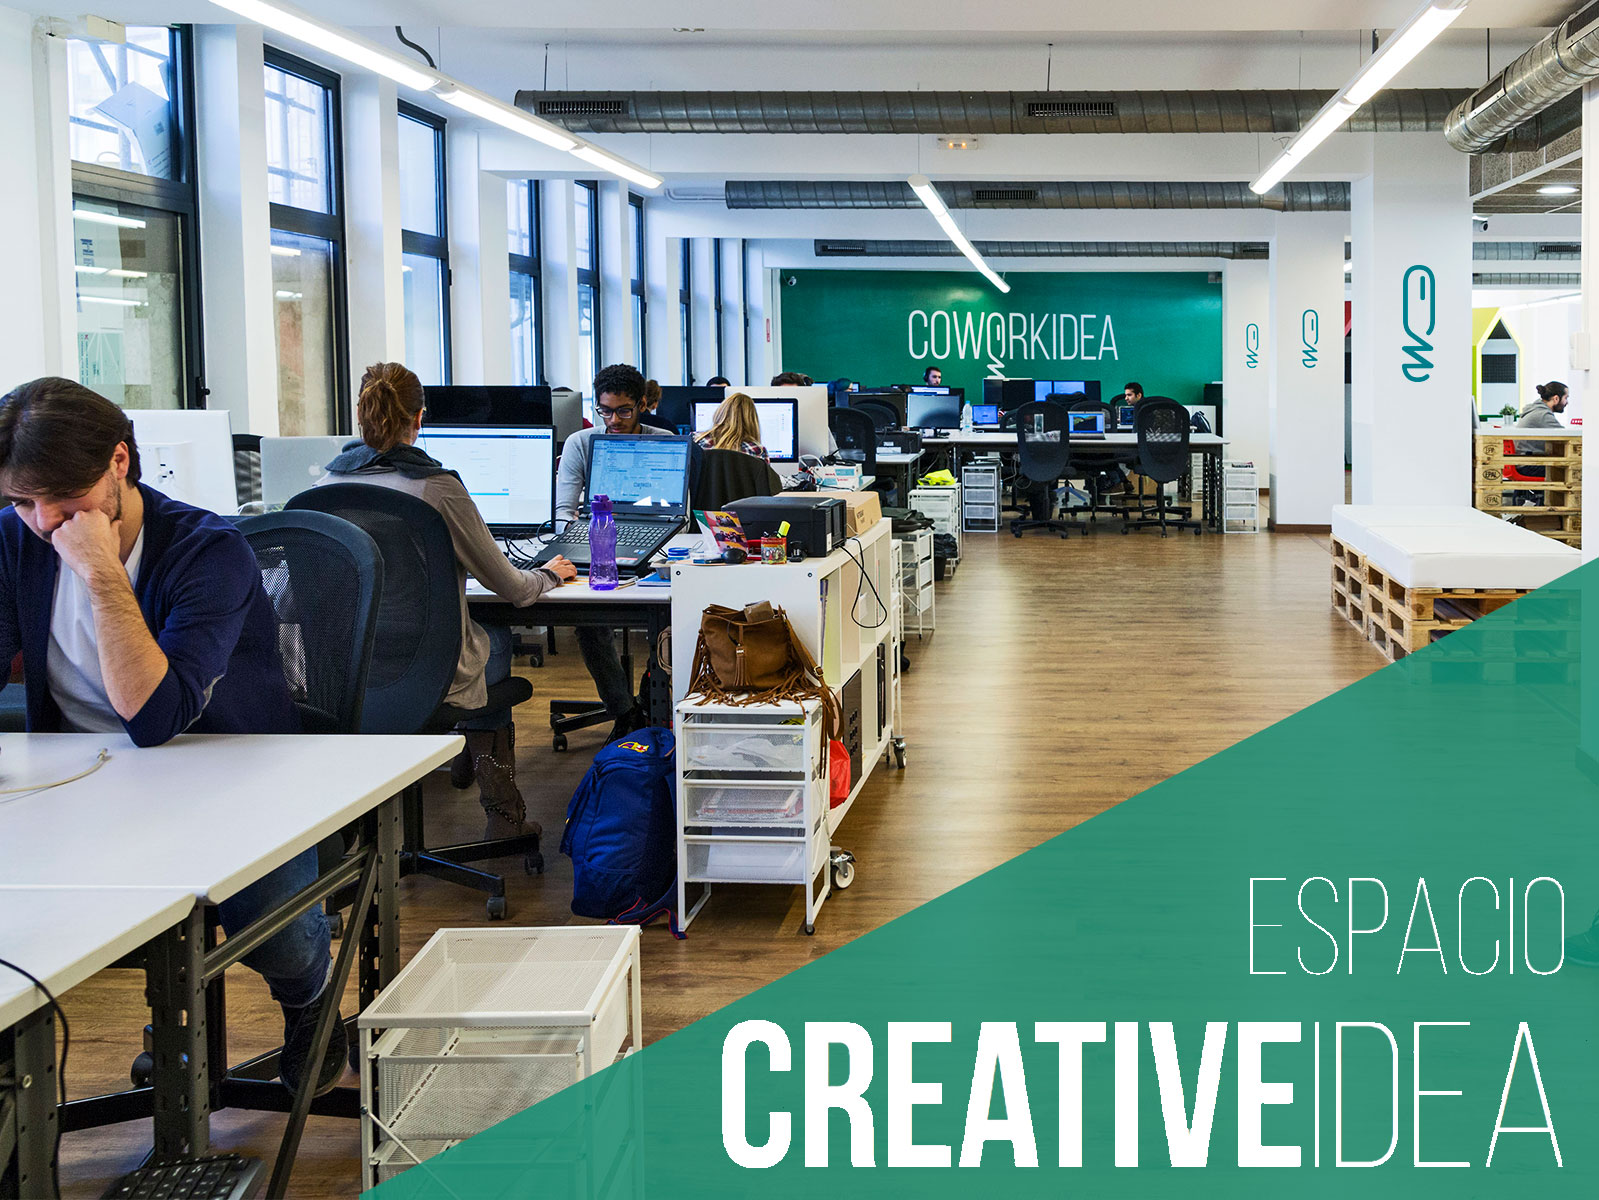 Espacio Crative Idea para creativos, freelancers y nómadas digitales